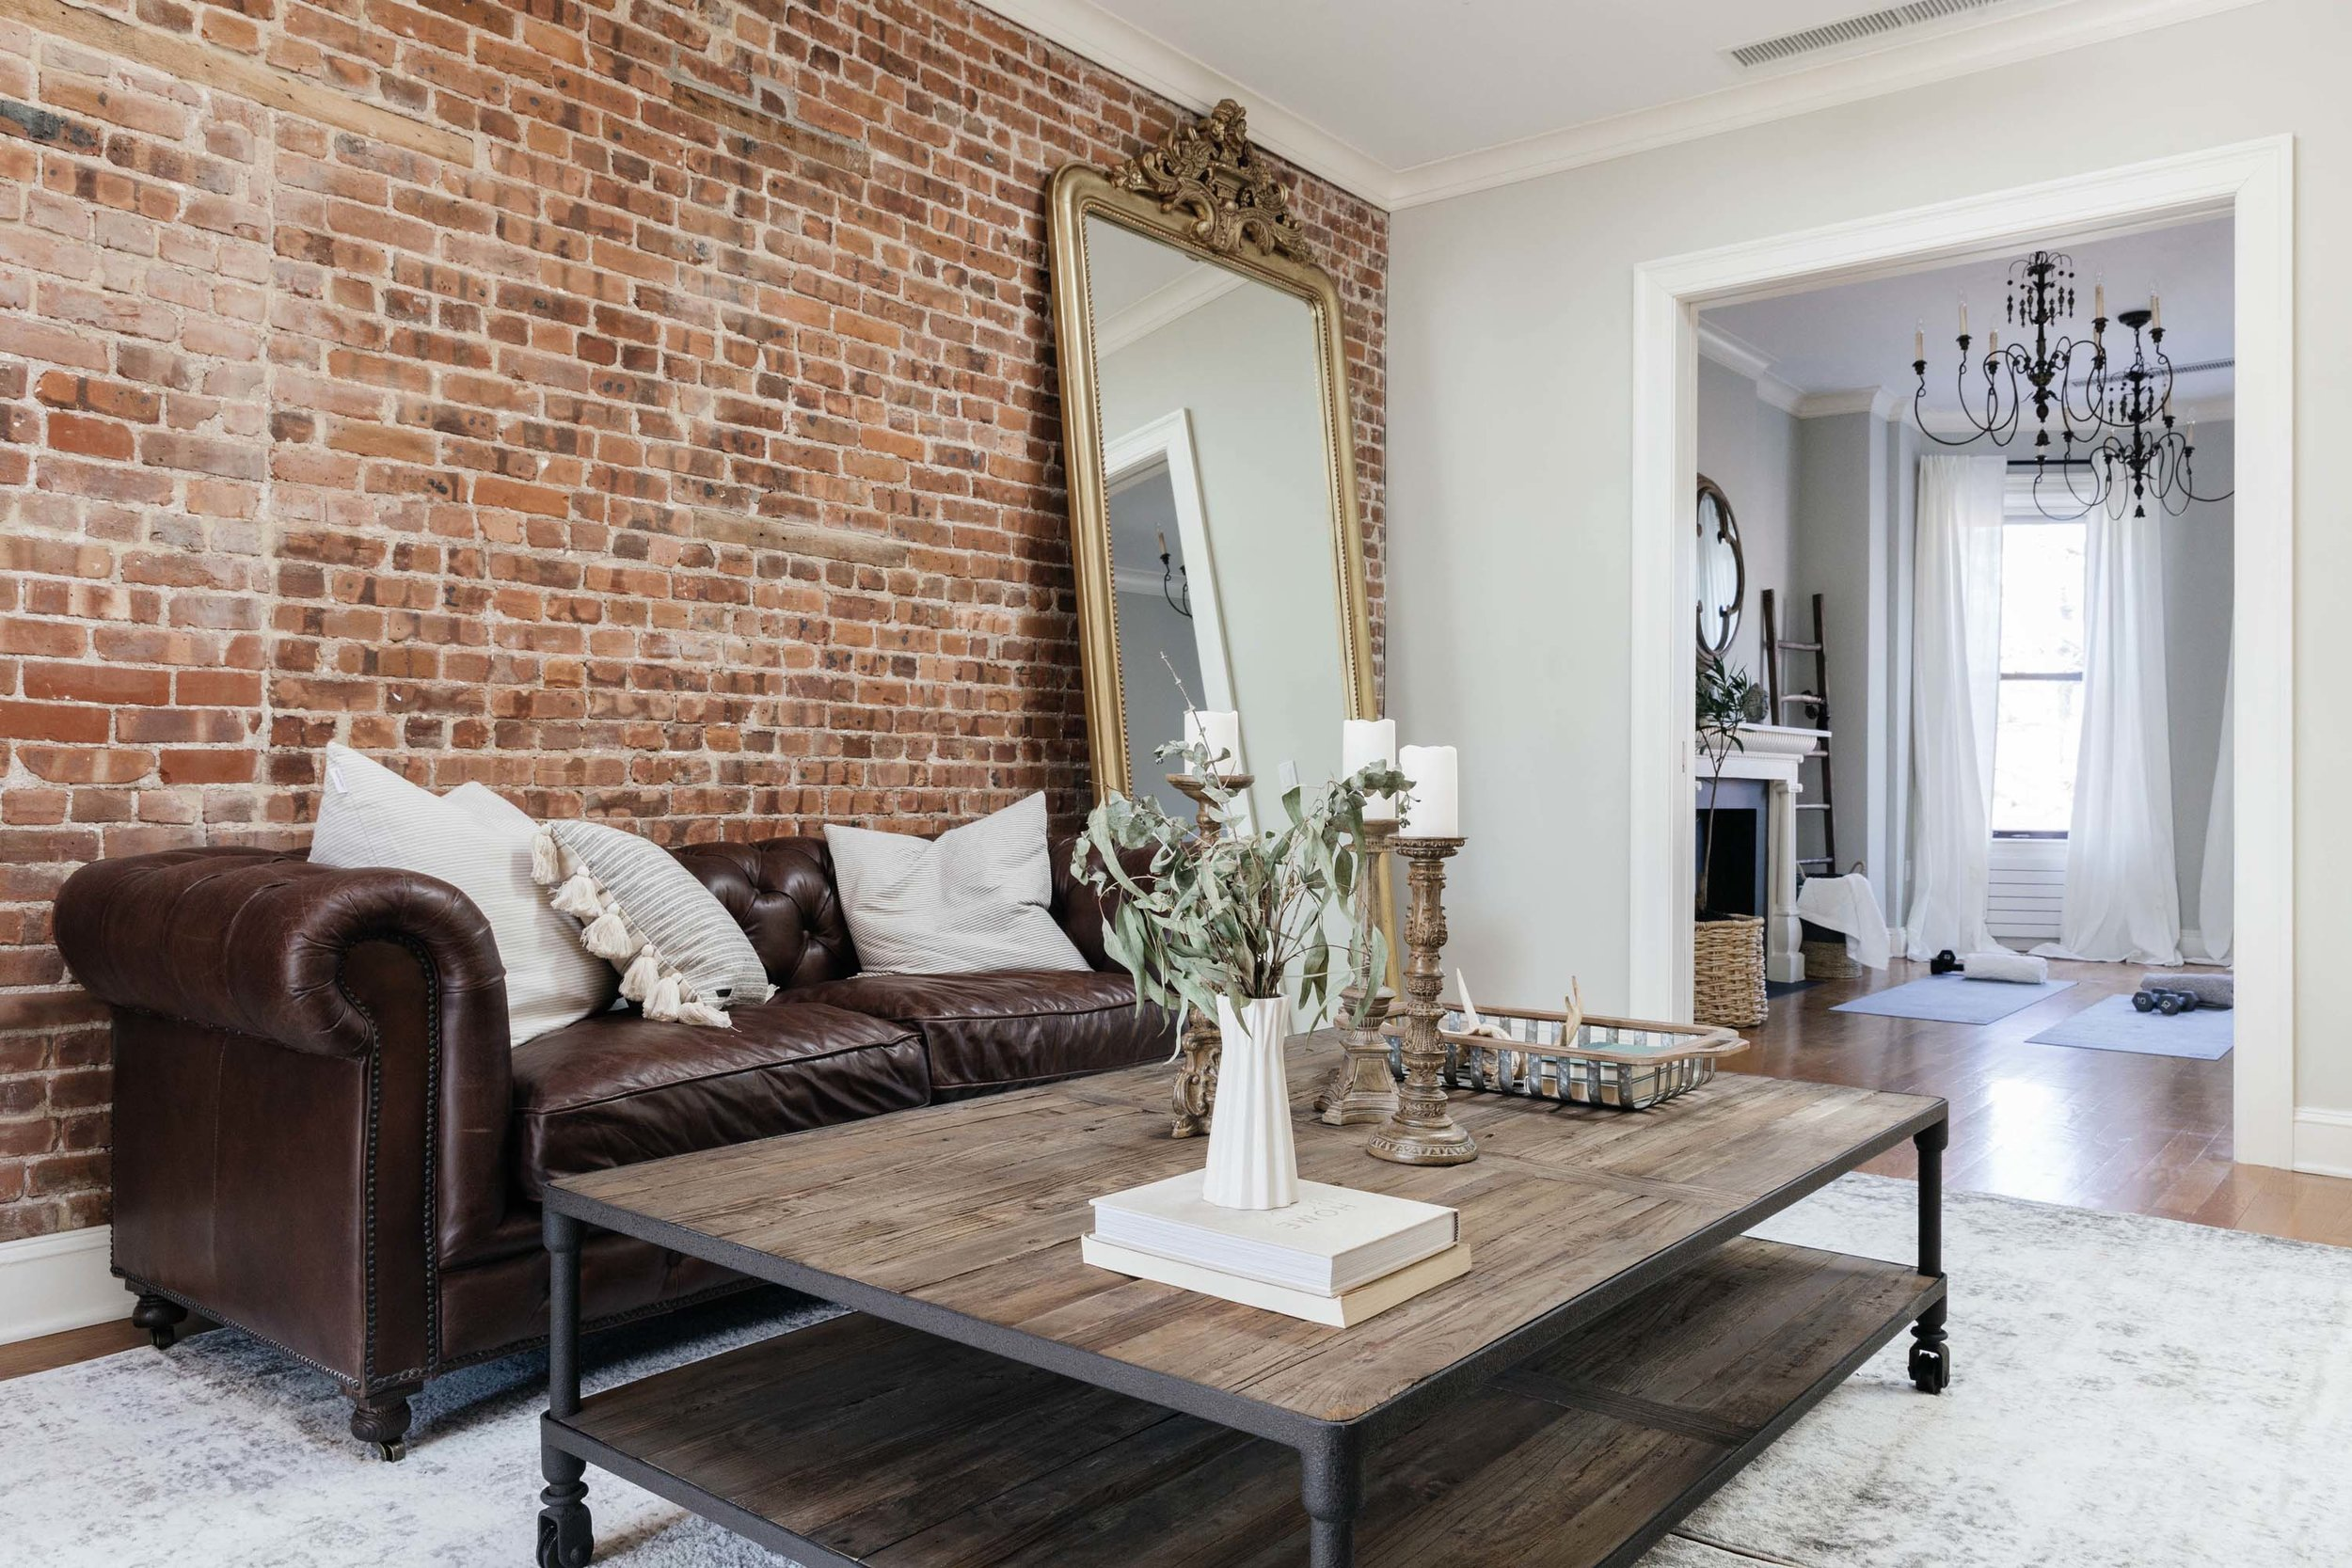 Sitting area with dark brown plush leather sofa and exposed brick wall